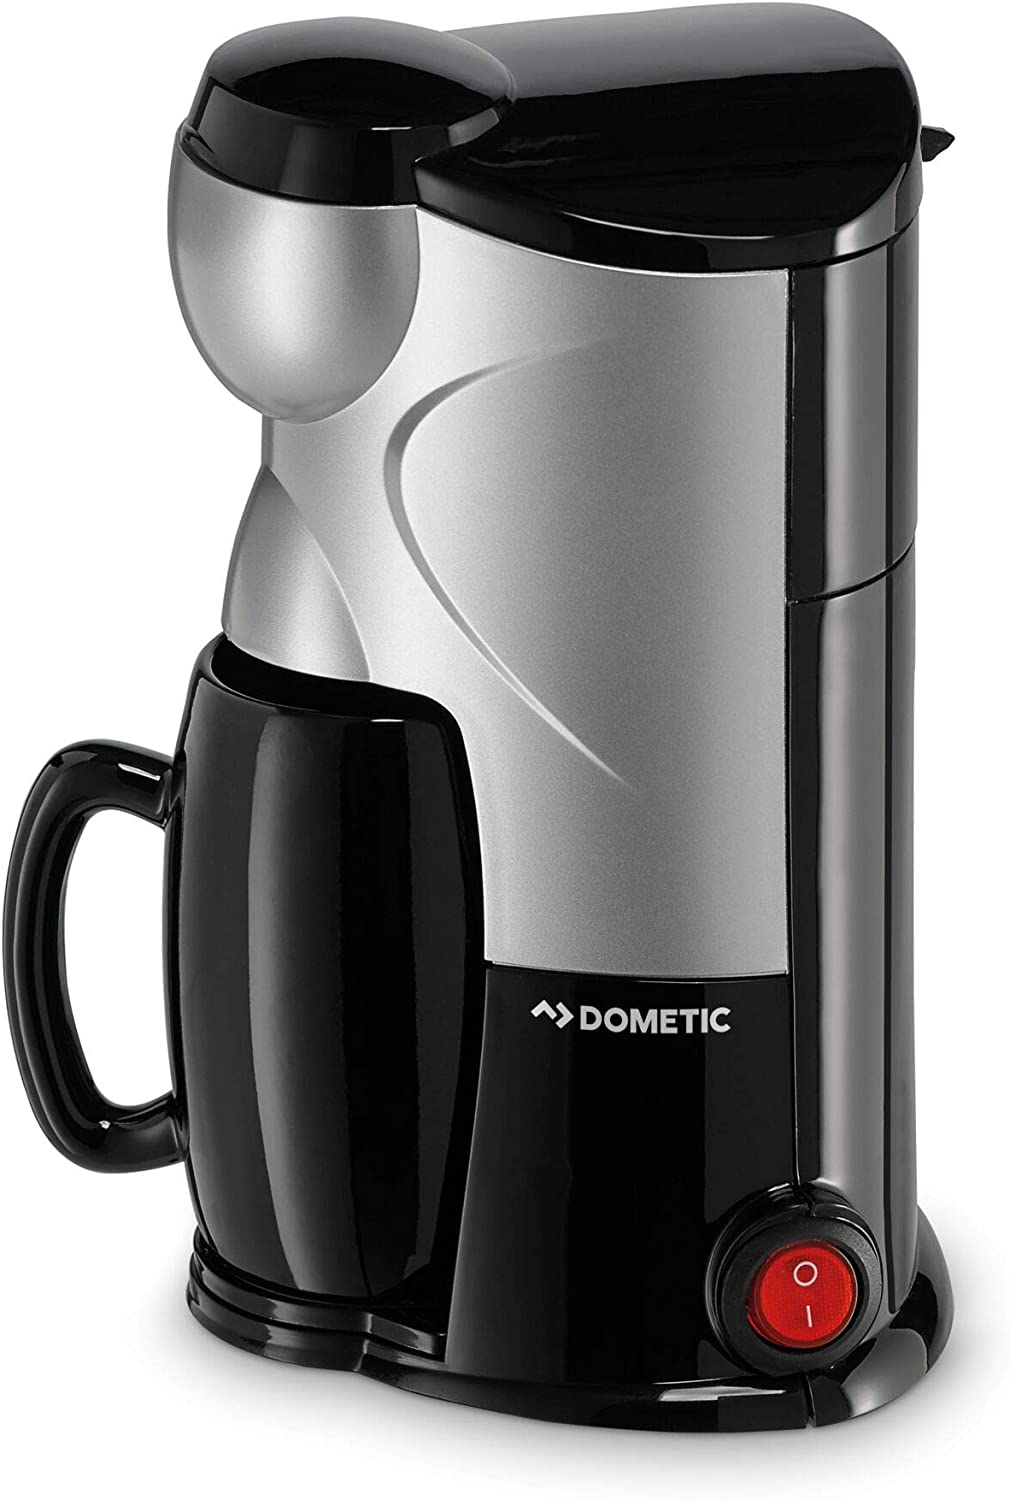 Dometic PerfectCoffe MC 01 - Cafetera de 12 V para una taza Dometic, con conector para mechero